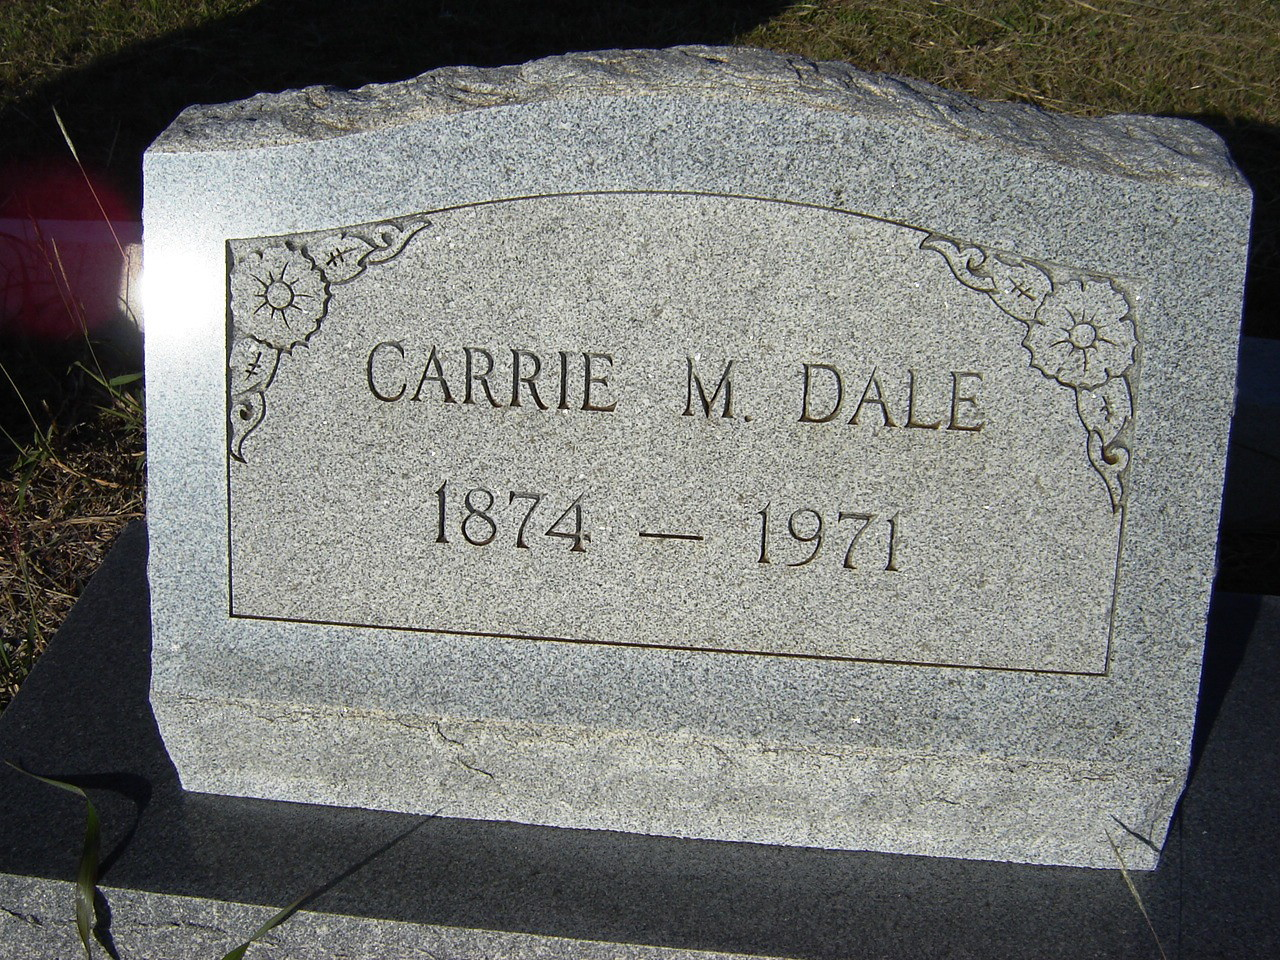 Carrie M Bright